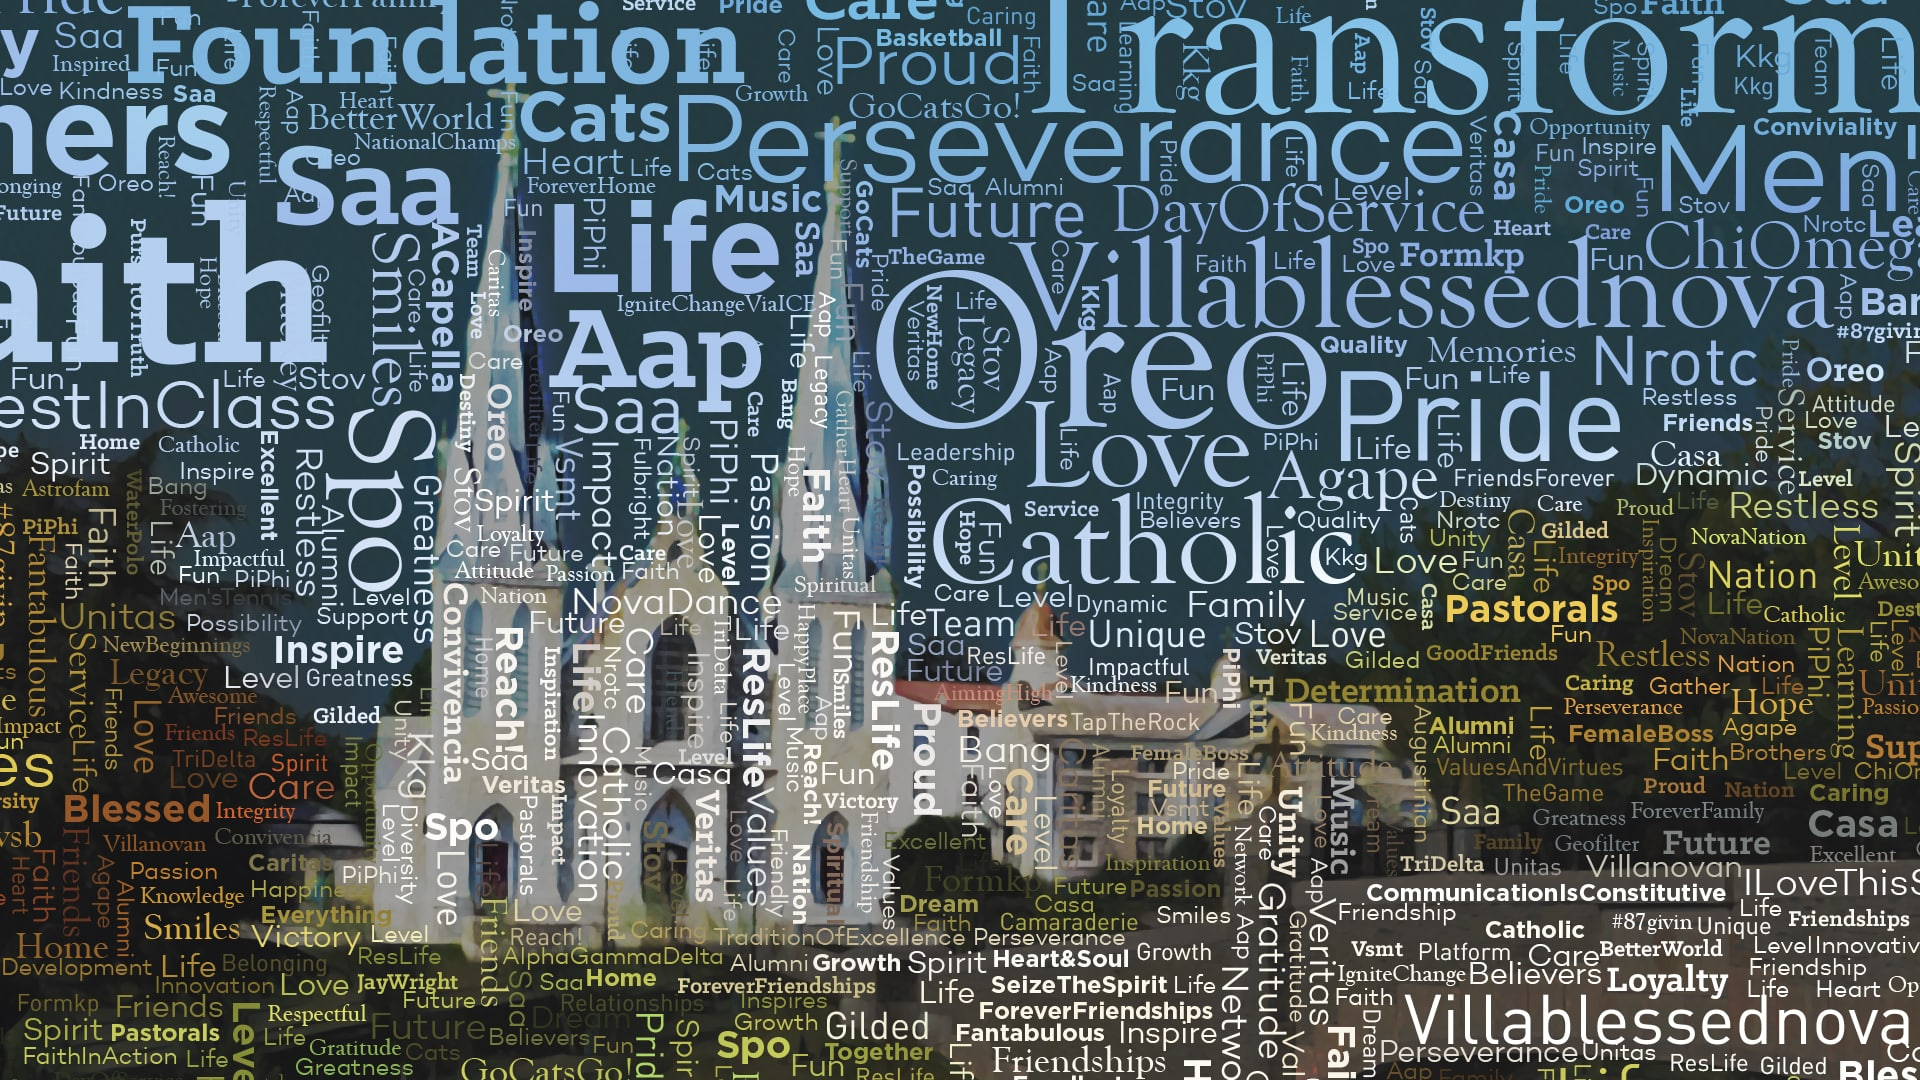 Villanova Word Mosaic